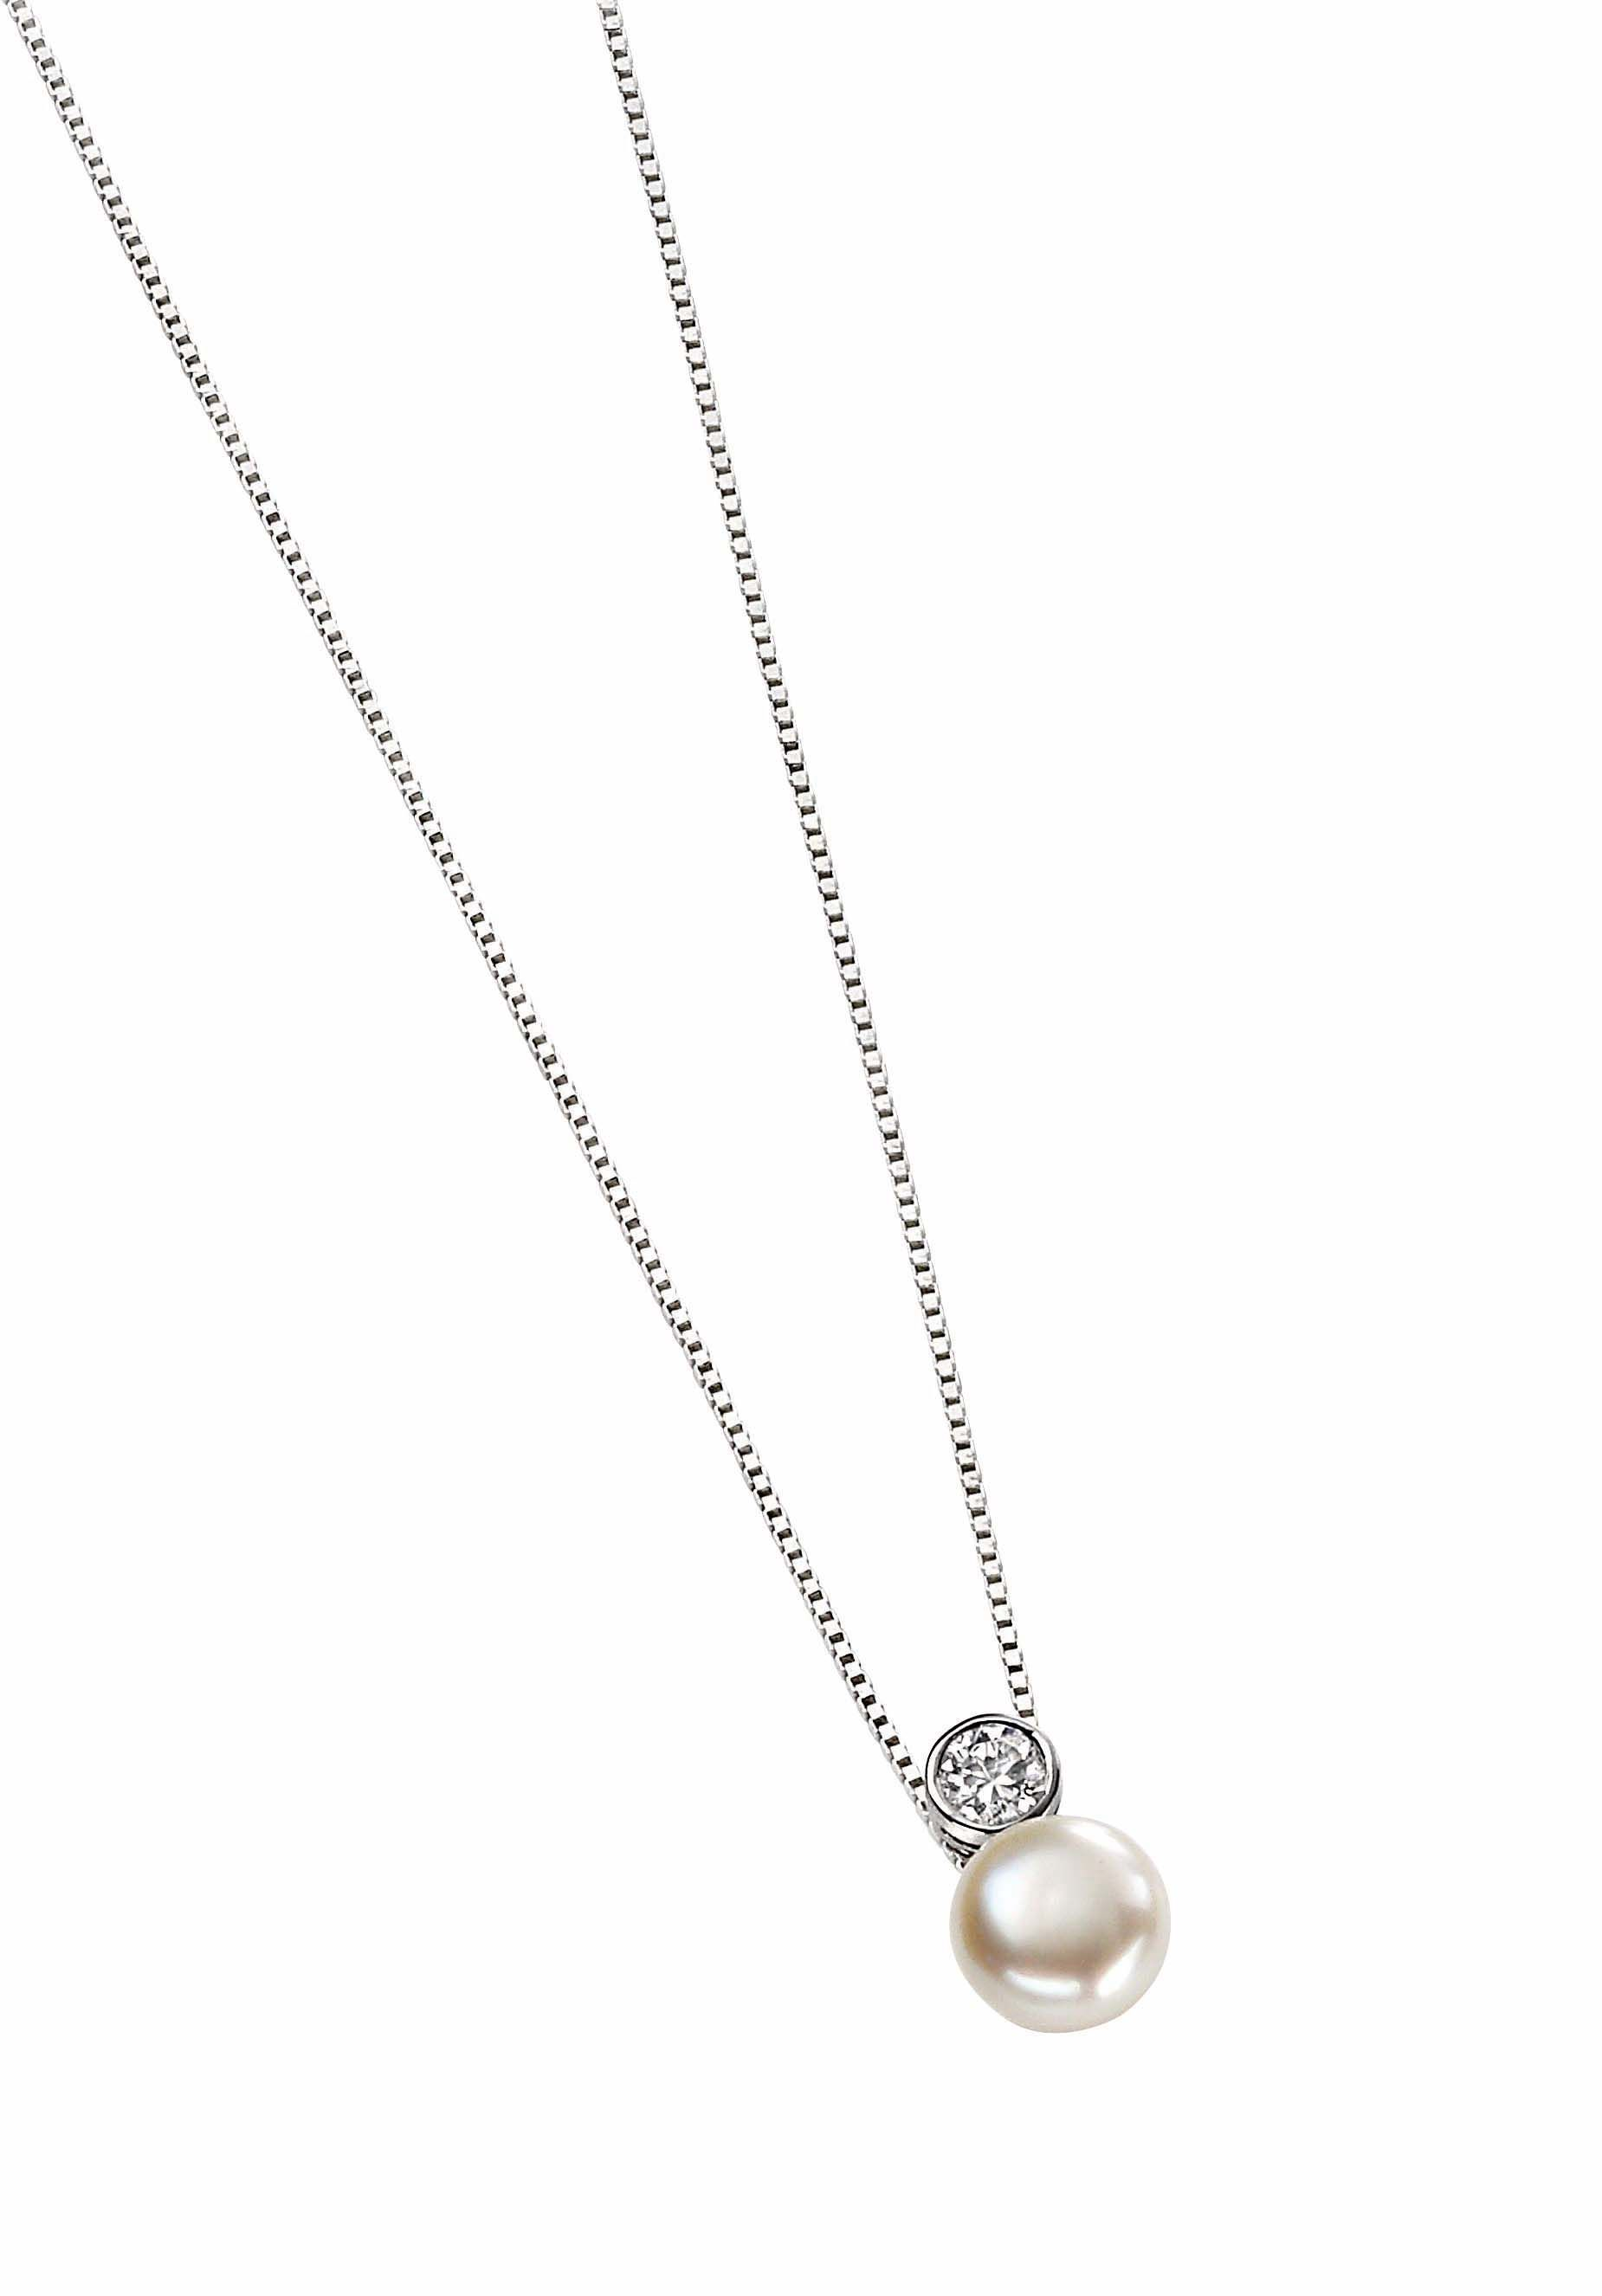 Cz and white pearl drop pendant